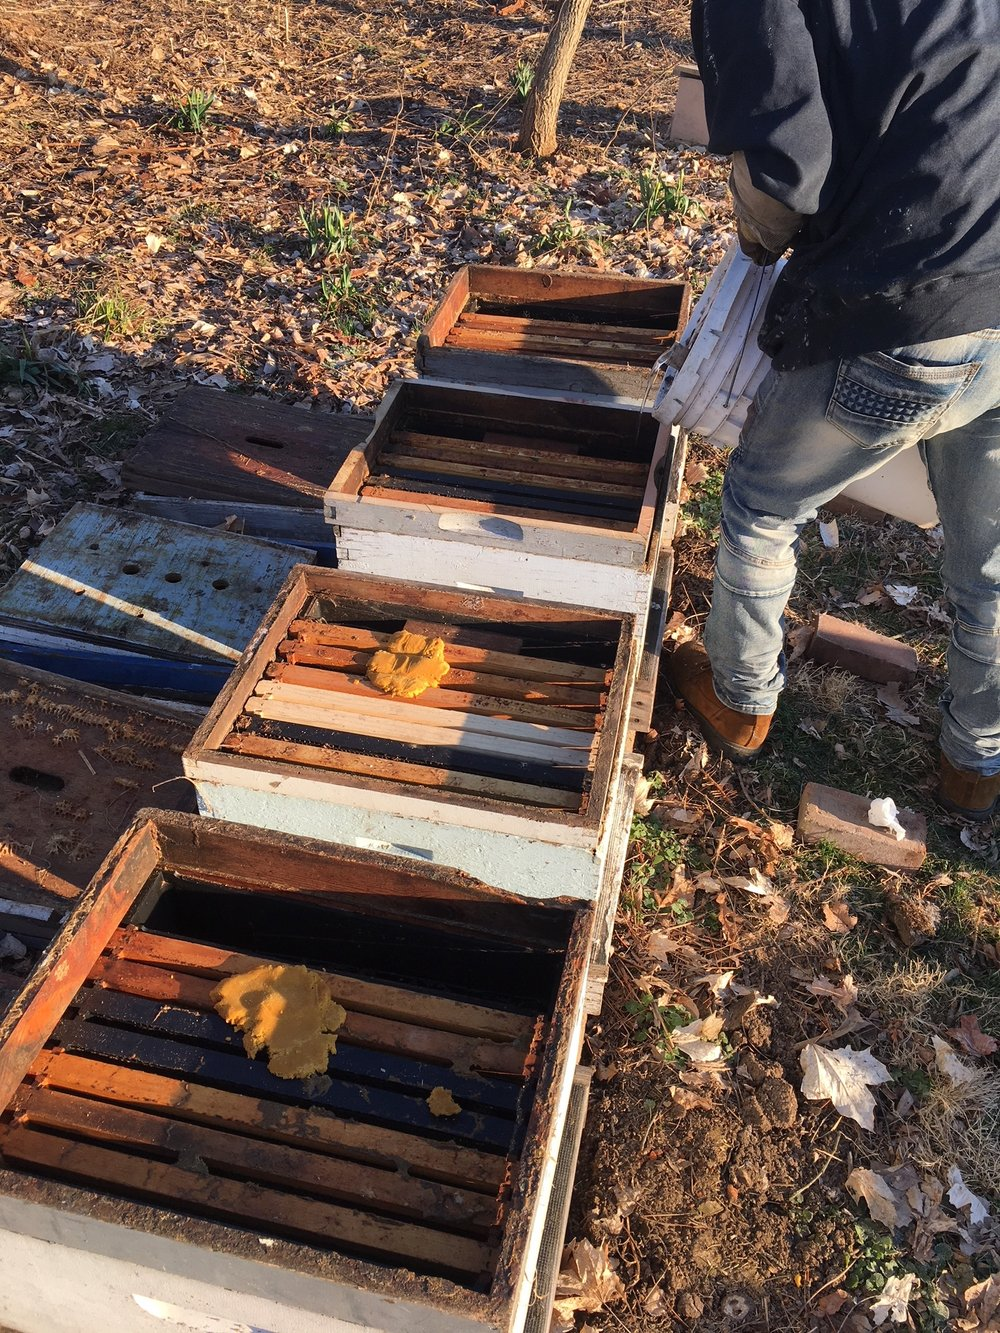 Prepping the hives. A little protein, a little syrup.